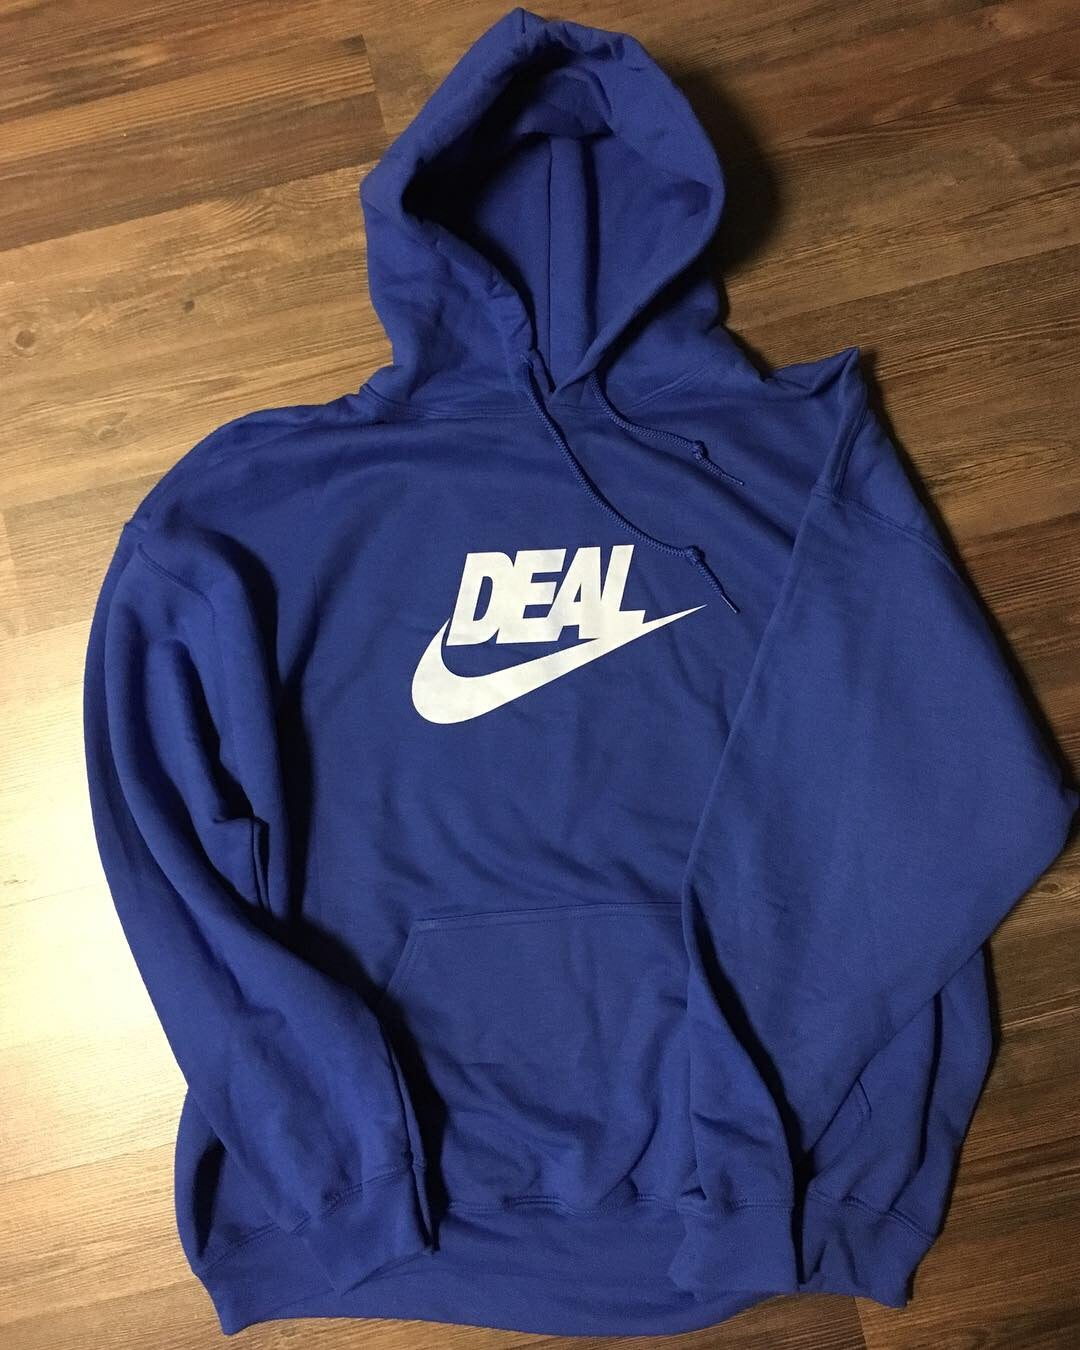 Deal Hoodies! Pre-Sale!!!